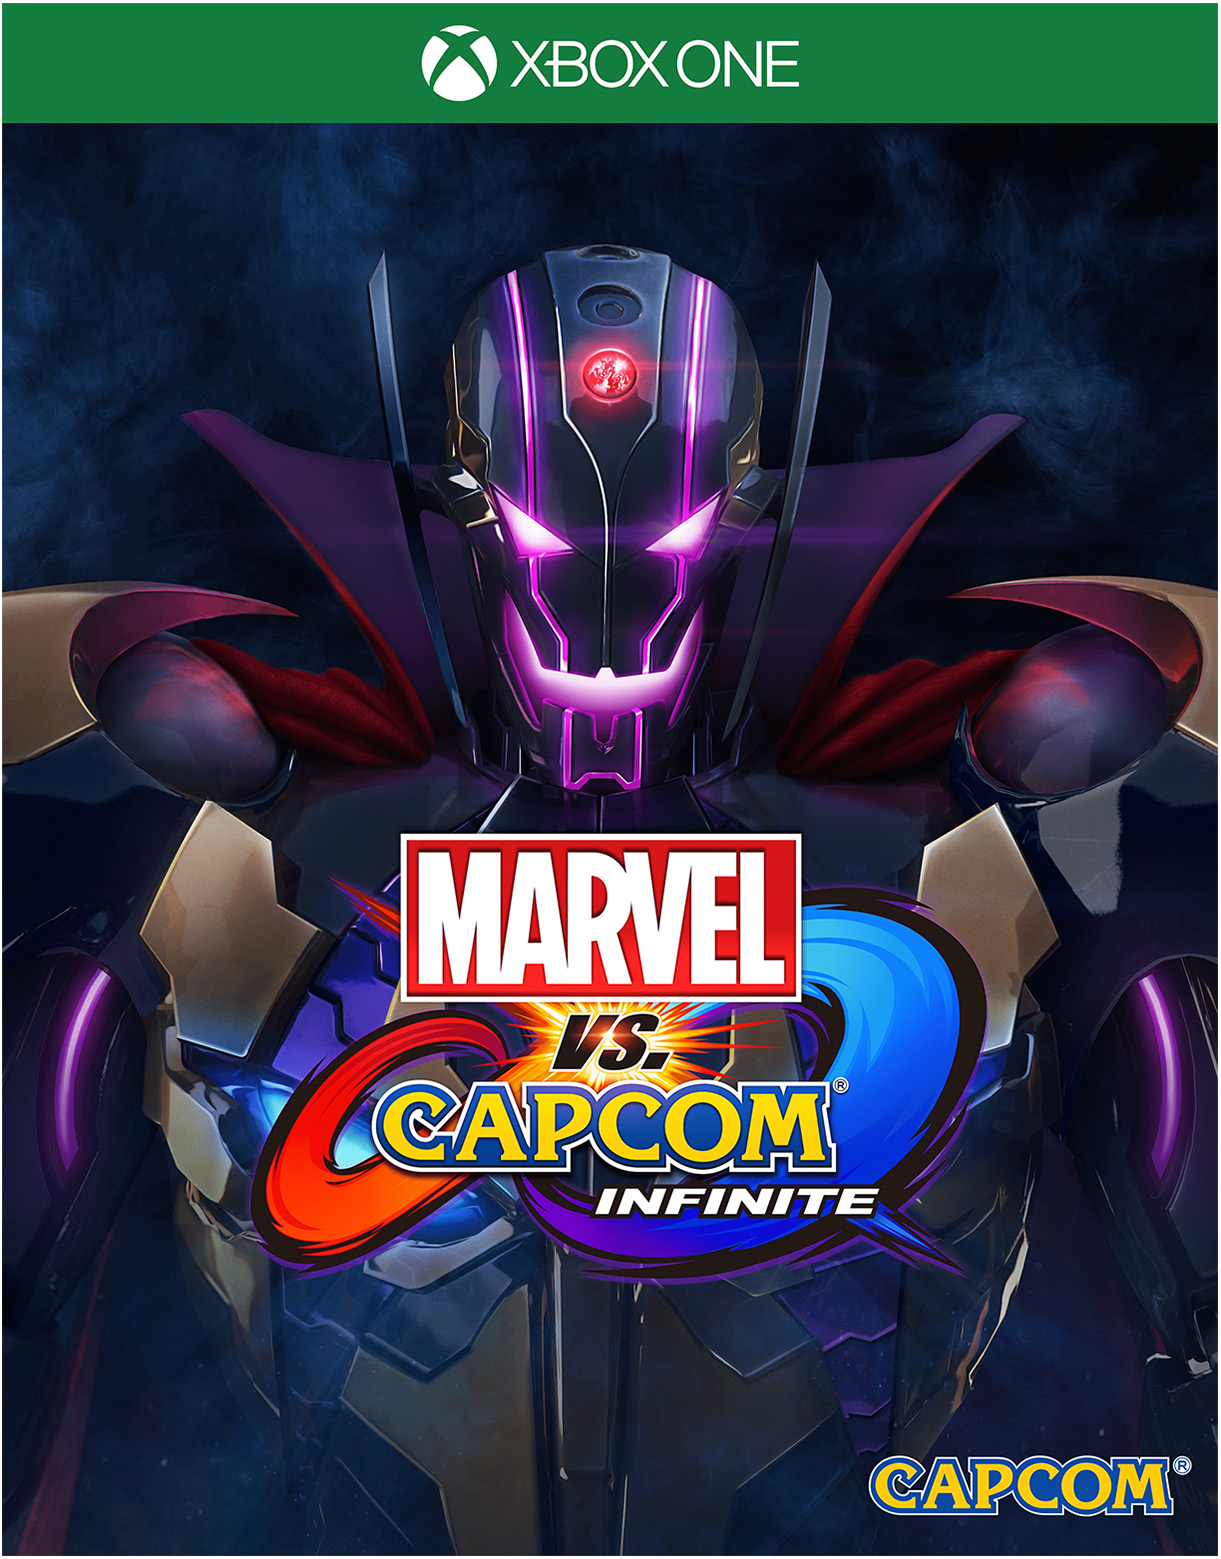 Marvel vs. Capcom: Infinite Deluxe Edition for Xbox One Deal